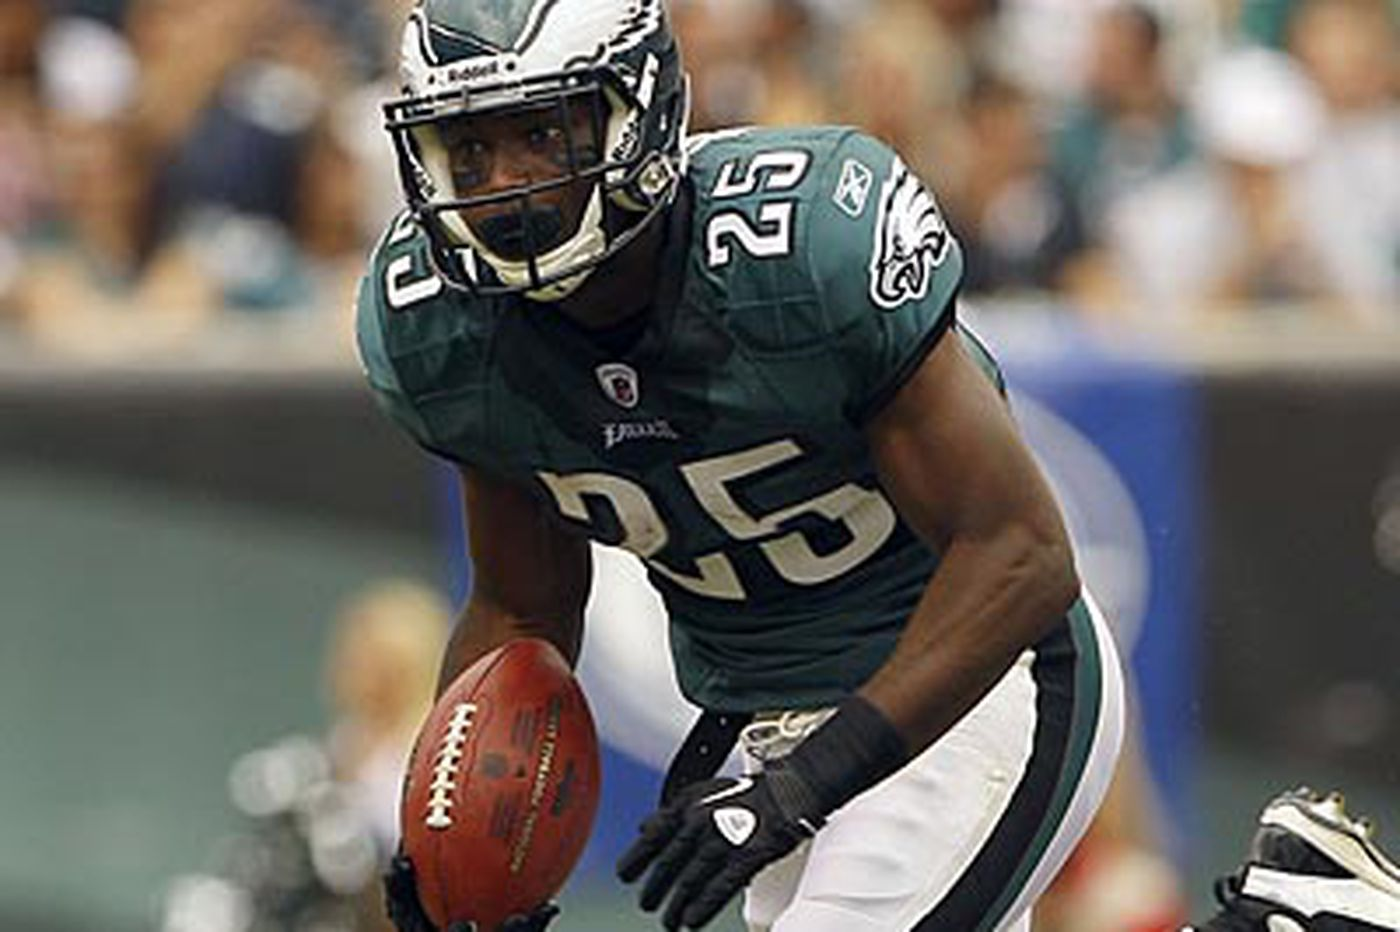 Eagles' Jackson advises McCoy not to hold out